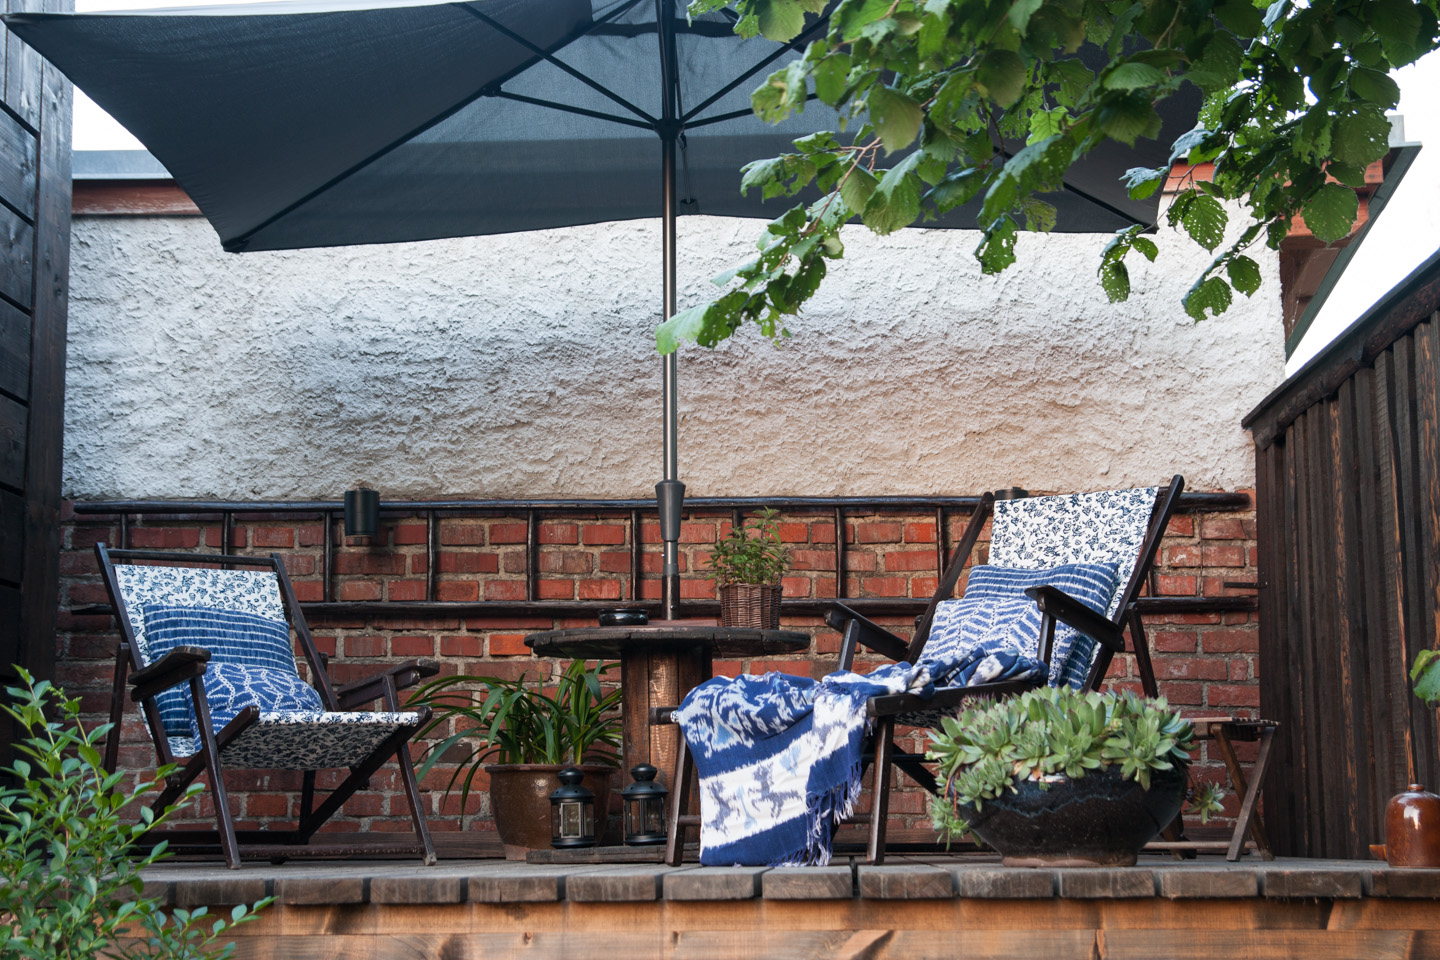 Private terrace with lounge chairs and garden view